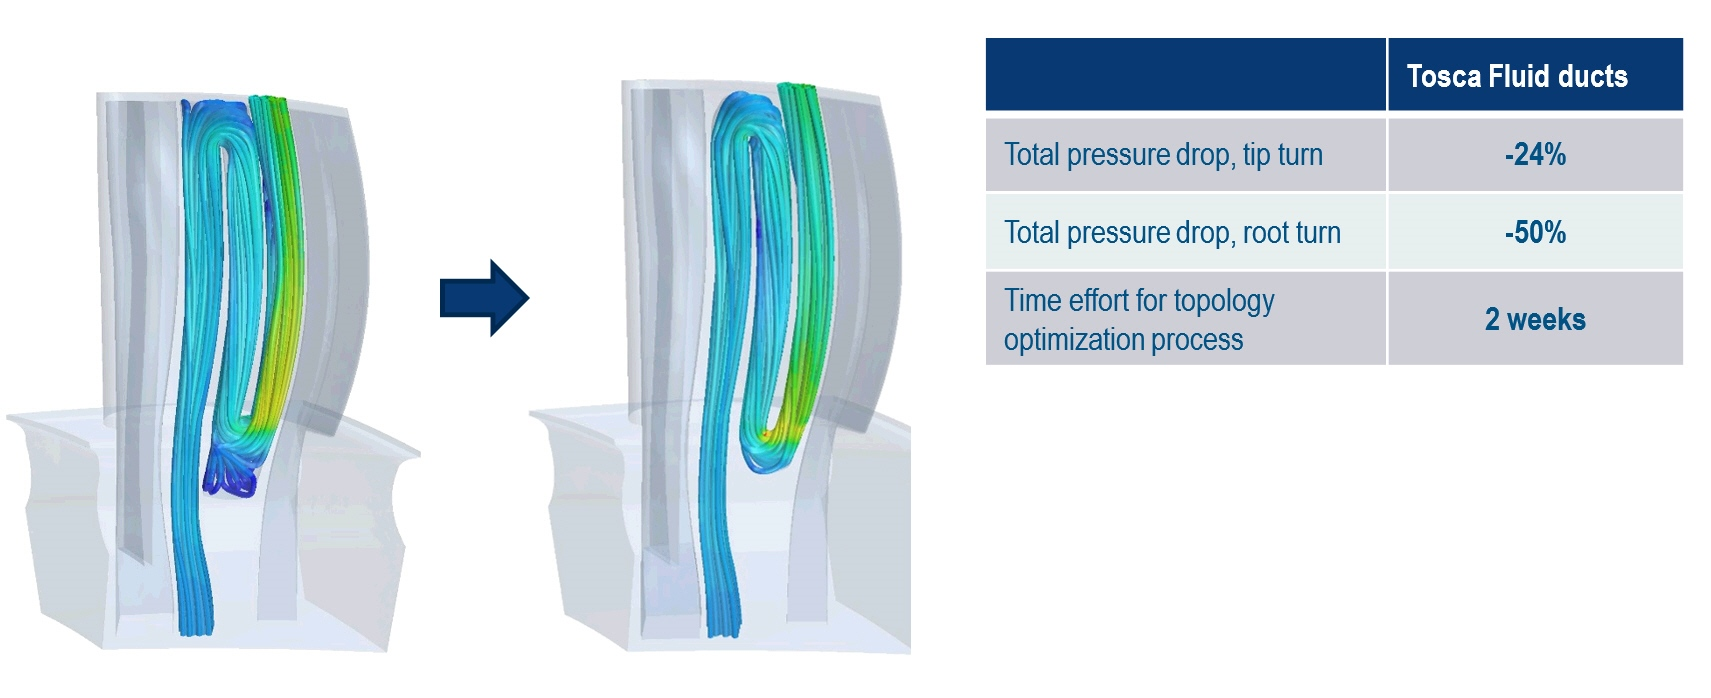 Efficient Cooling Channel Design Of A Turbine Rotor Blade Qa Electrical Wiring Channels Since Change The Flow Leads To Modification Solid Subsequent Mechanical Analysis With Abaqus Standard Was Required